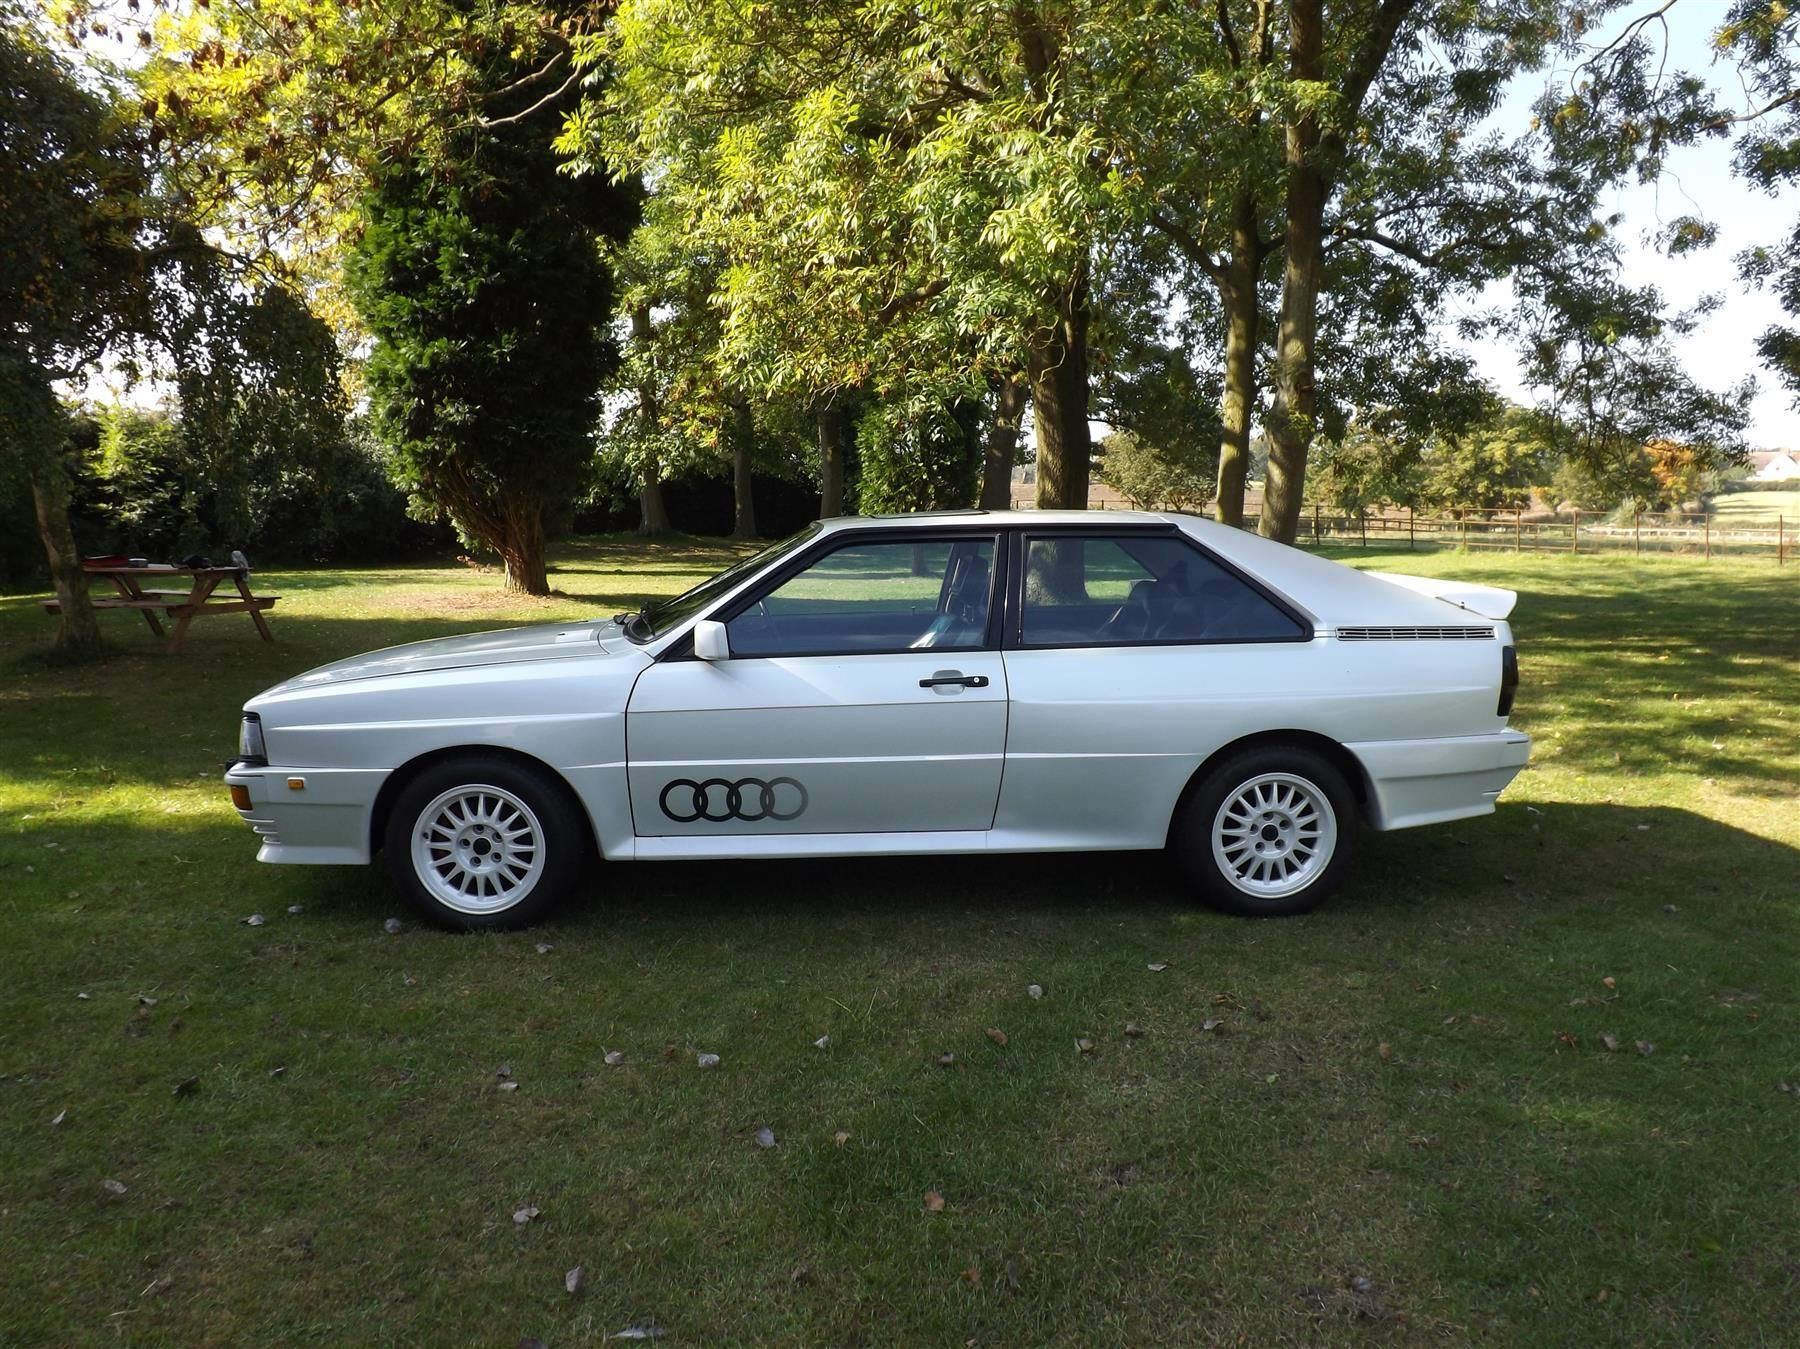 Used Audi Quattro Coupe For Sale In Warwickshire From Classic - Audi quattro coupe for sale